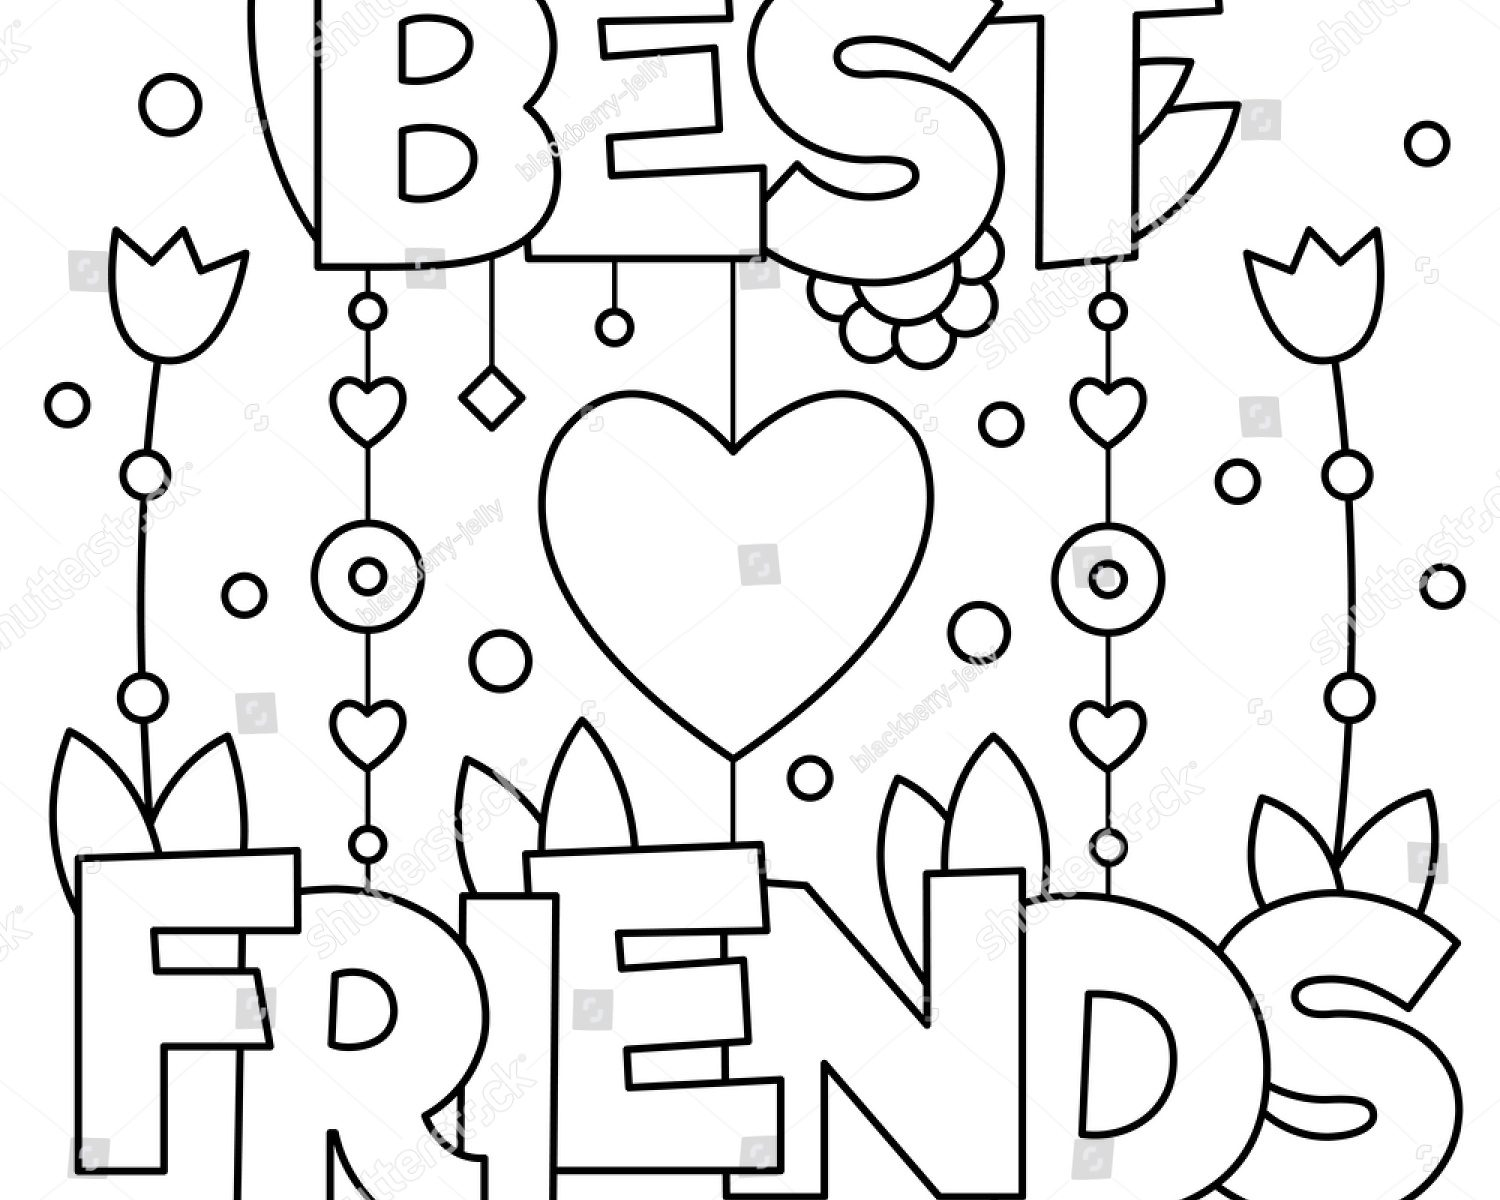 Best Friend Coloring Pages For Girls At Getdrawings Free Download